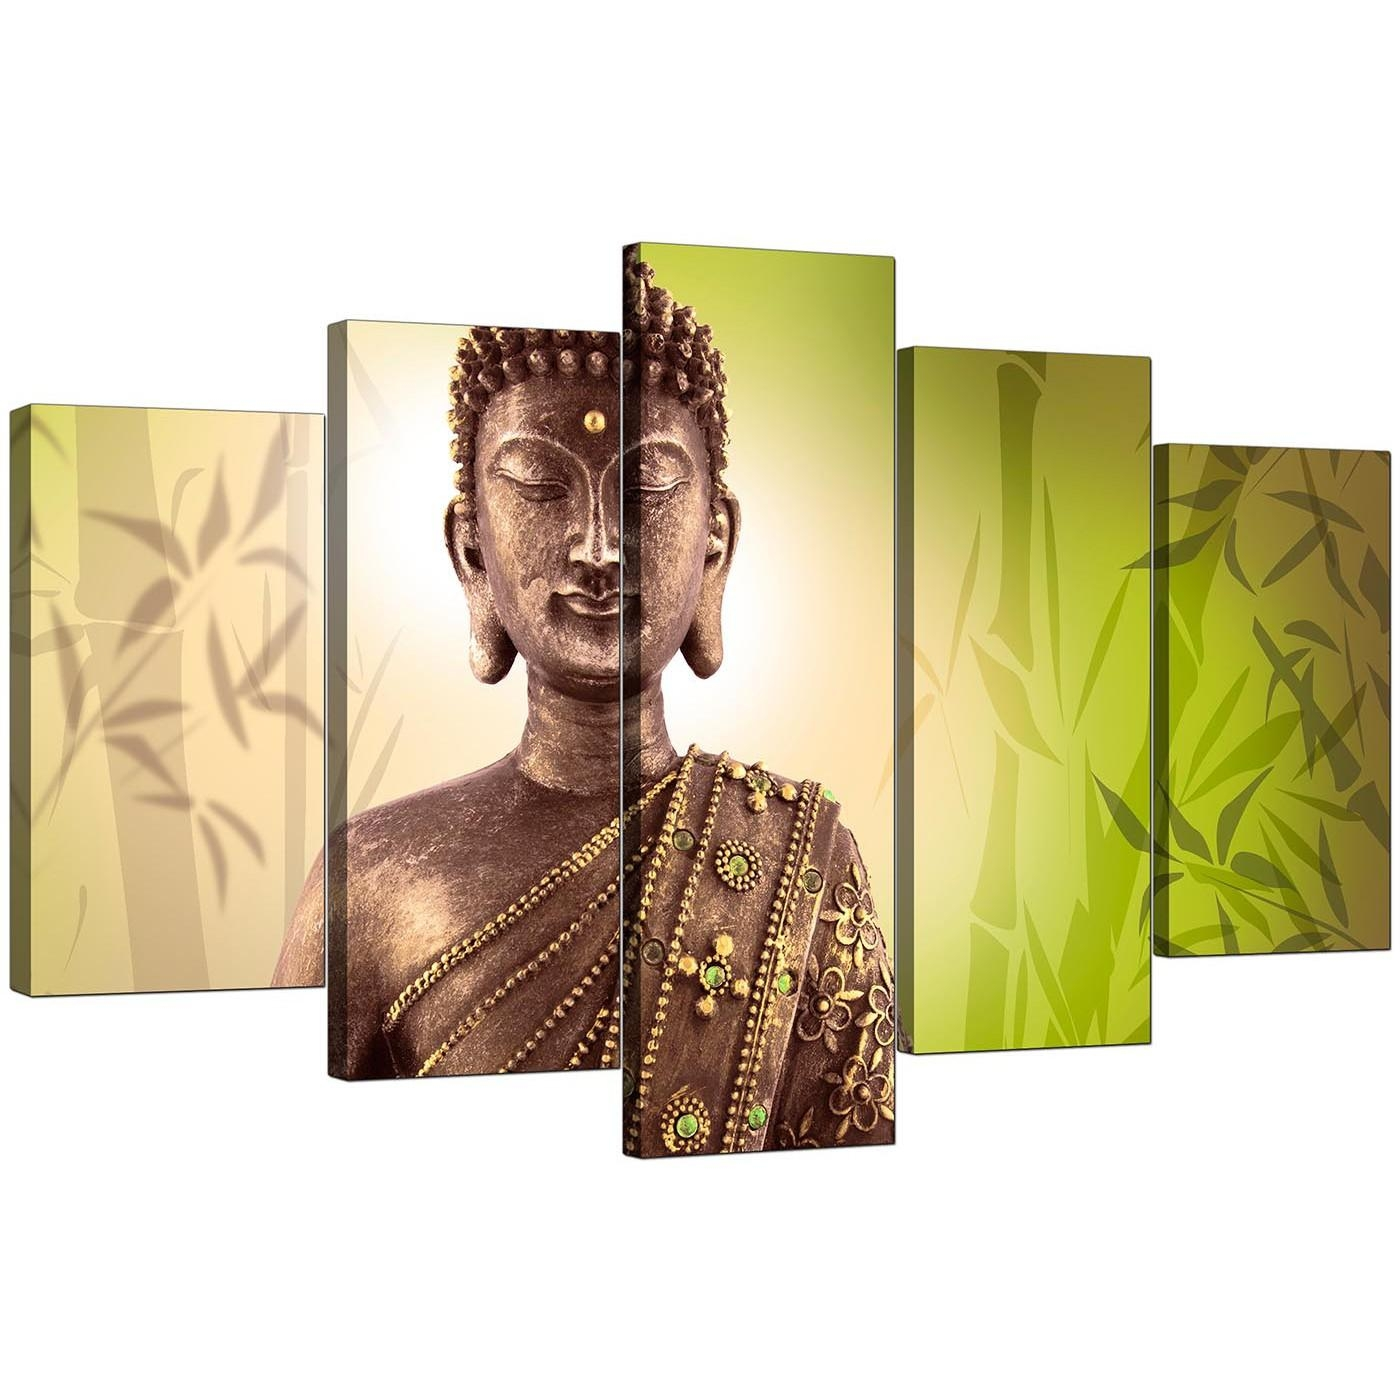 Extra Large Buddha Canvas Wall Art 5 Piece In Green For Large Green Wall Art (View 5 of 20)